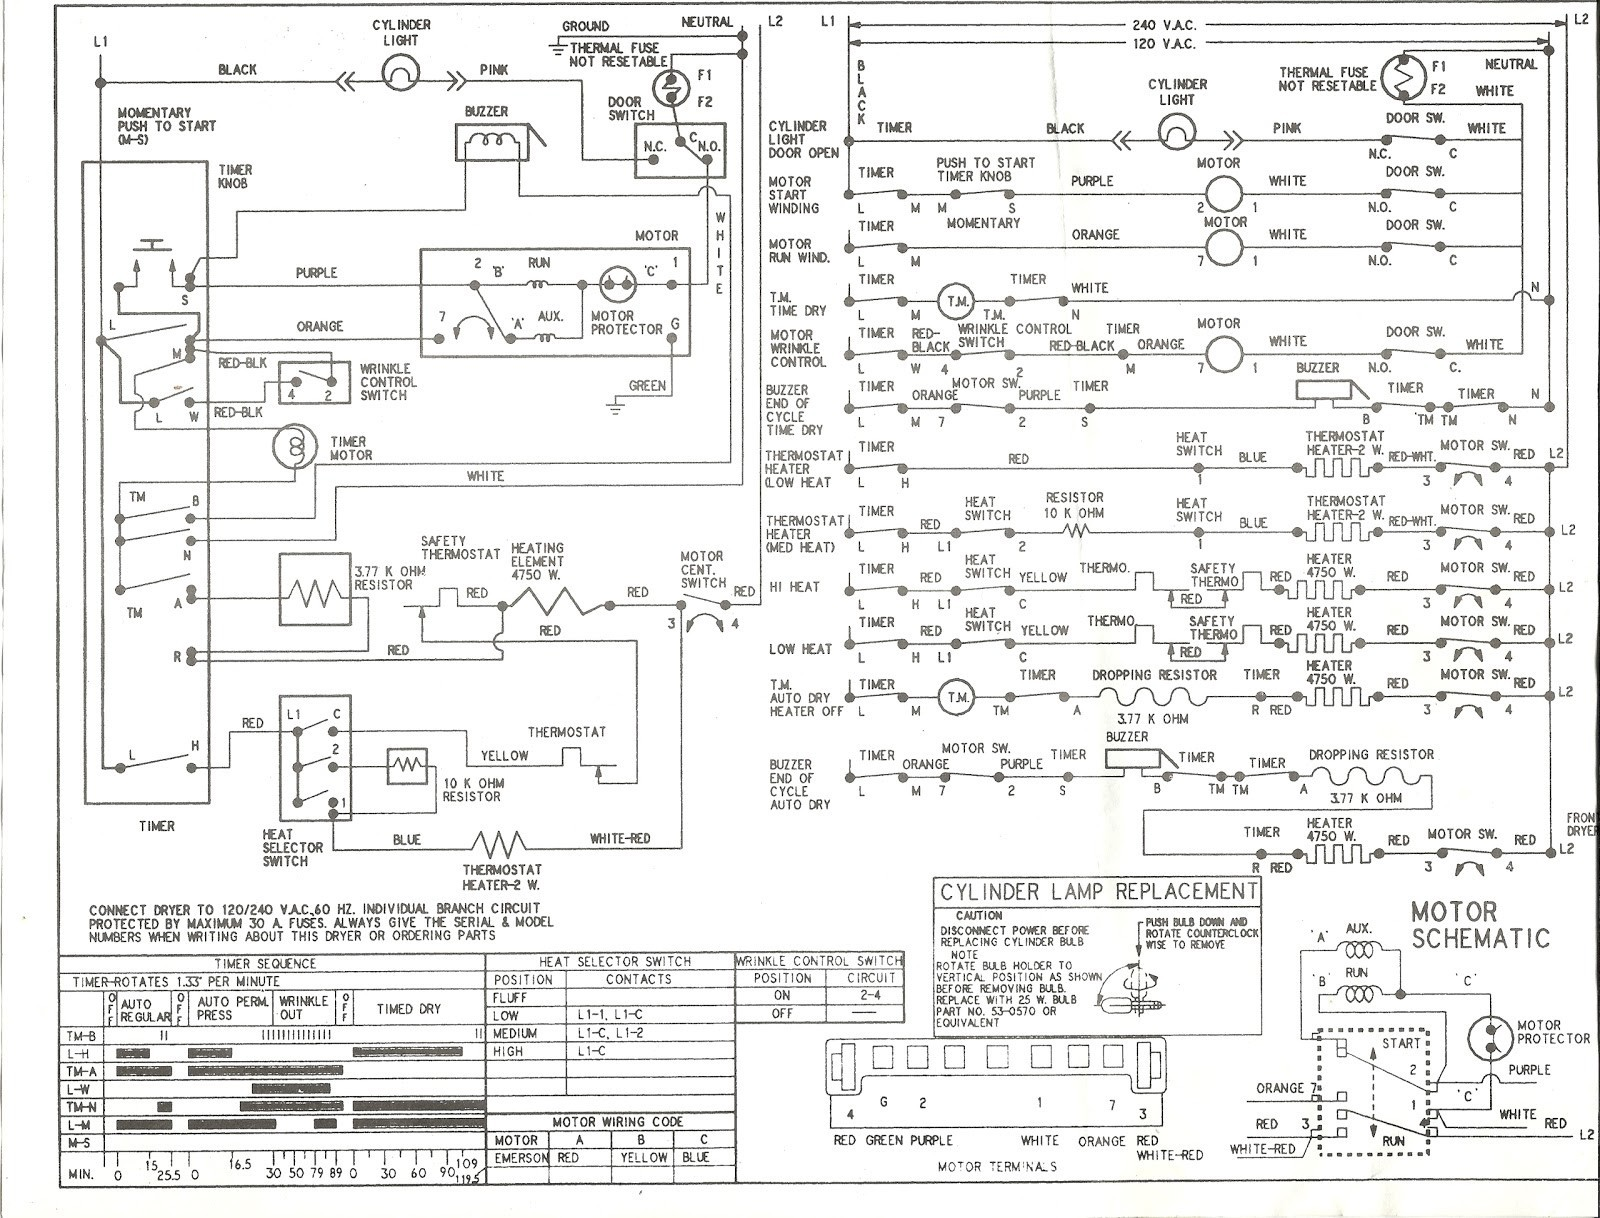 Wiring Diagram Kenmore Dishwasher Archive Of Automotive Harness In Addition Electric Dryer Power Cord My Rh Detoxicrecenze Com